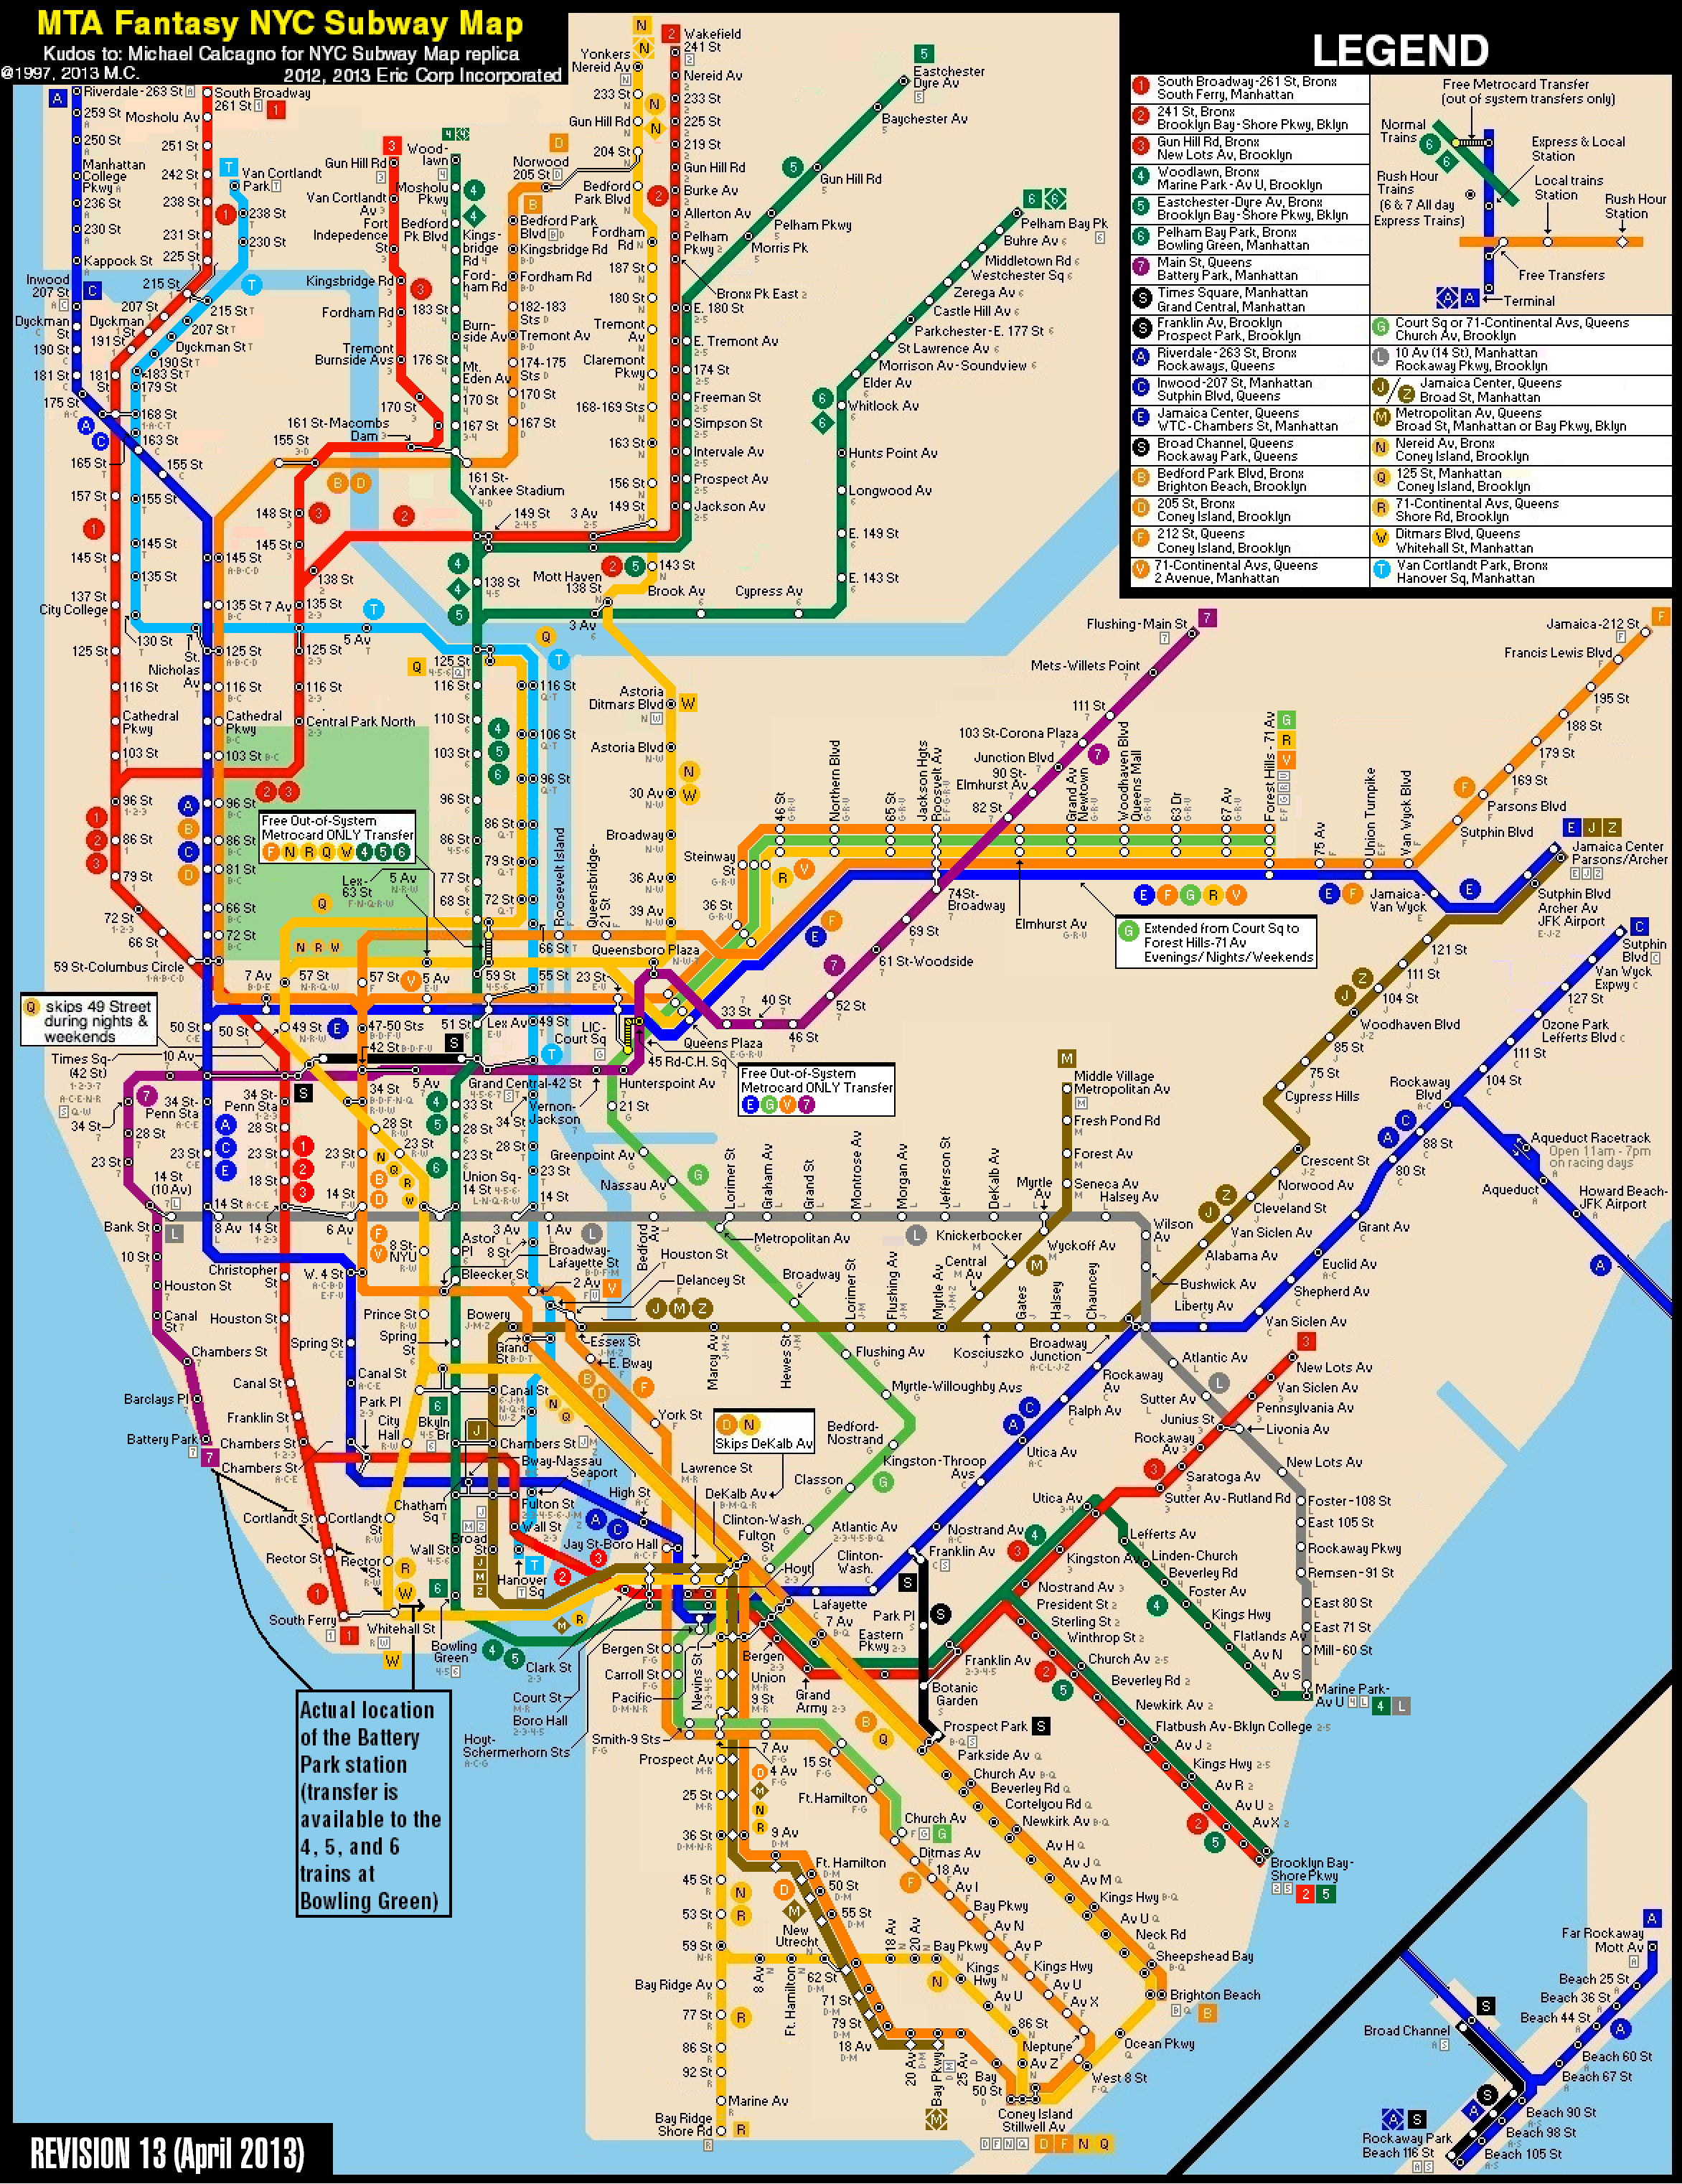 New York Subway Map New York City Subway Fantasy Map Revision - New york map city